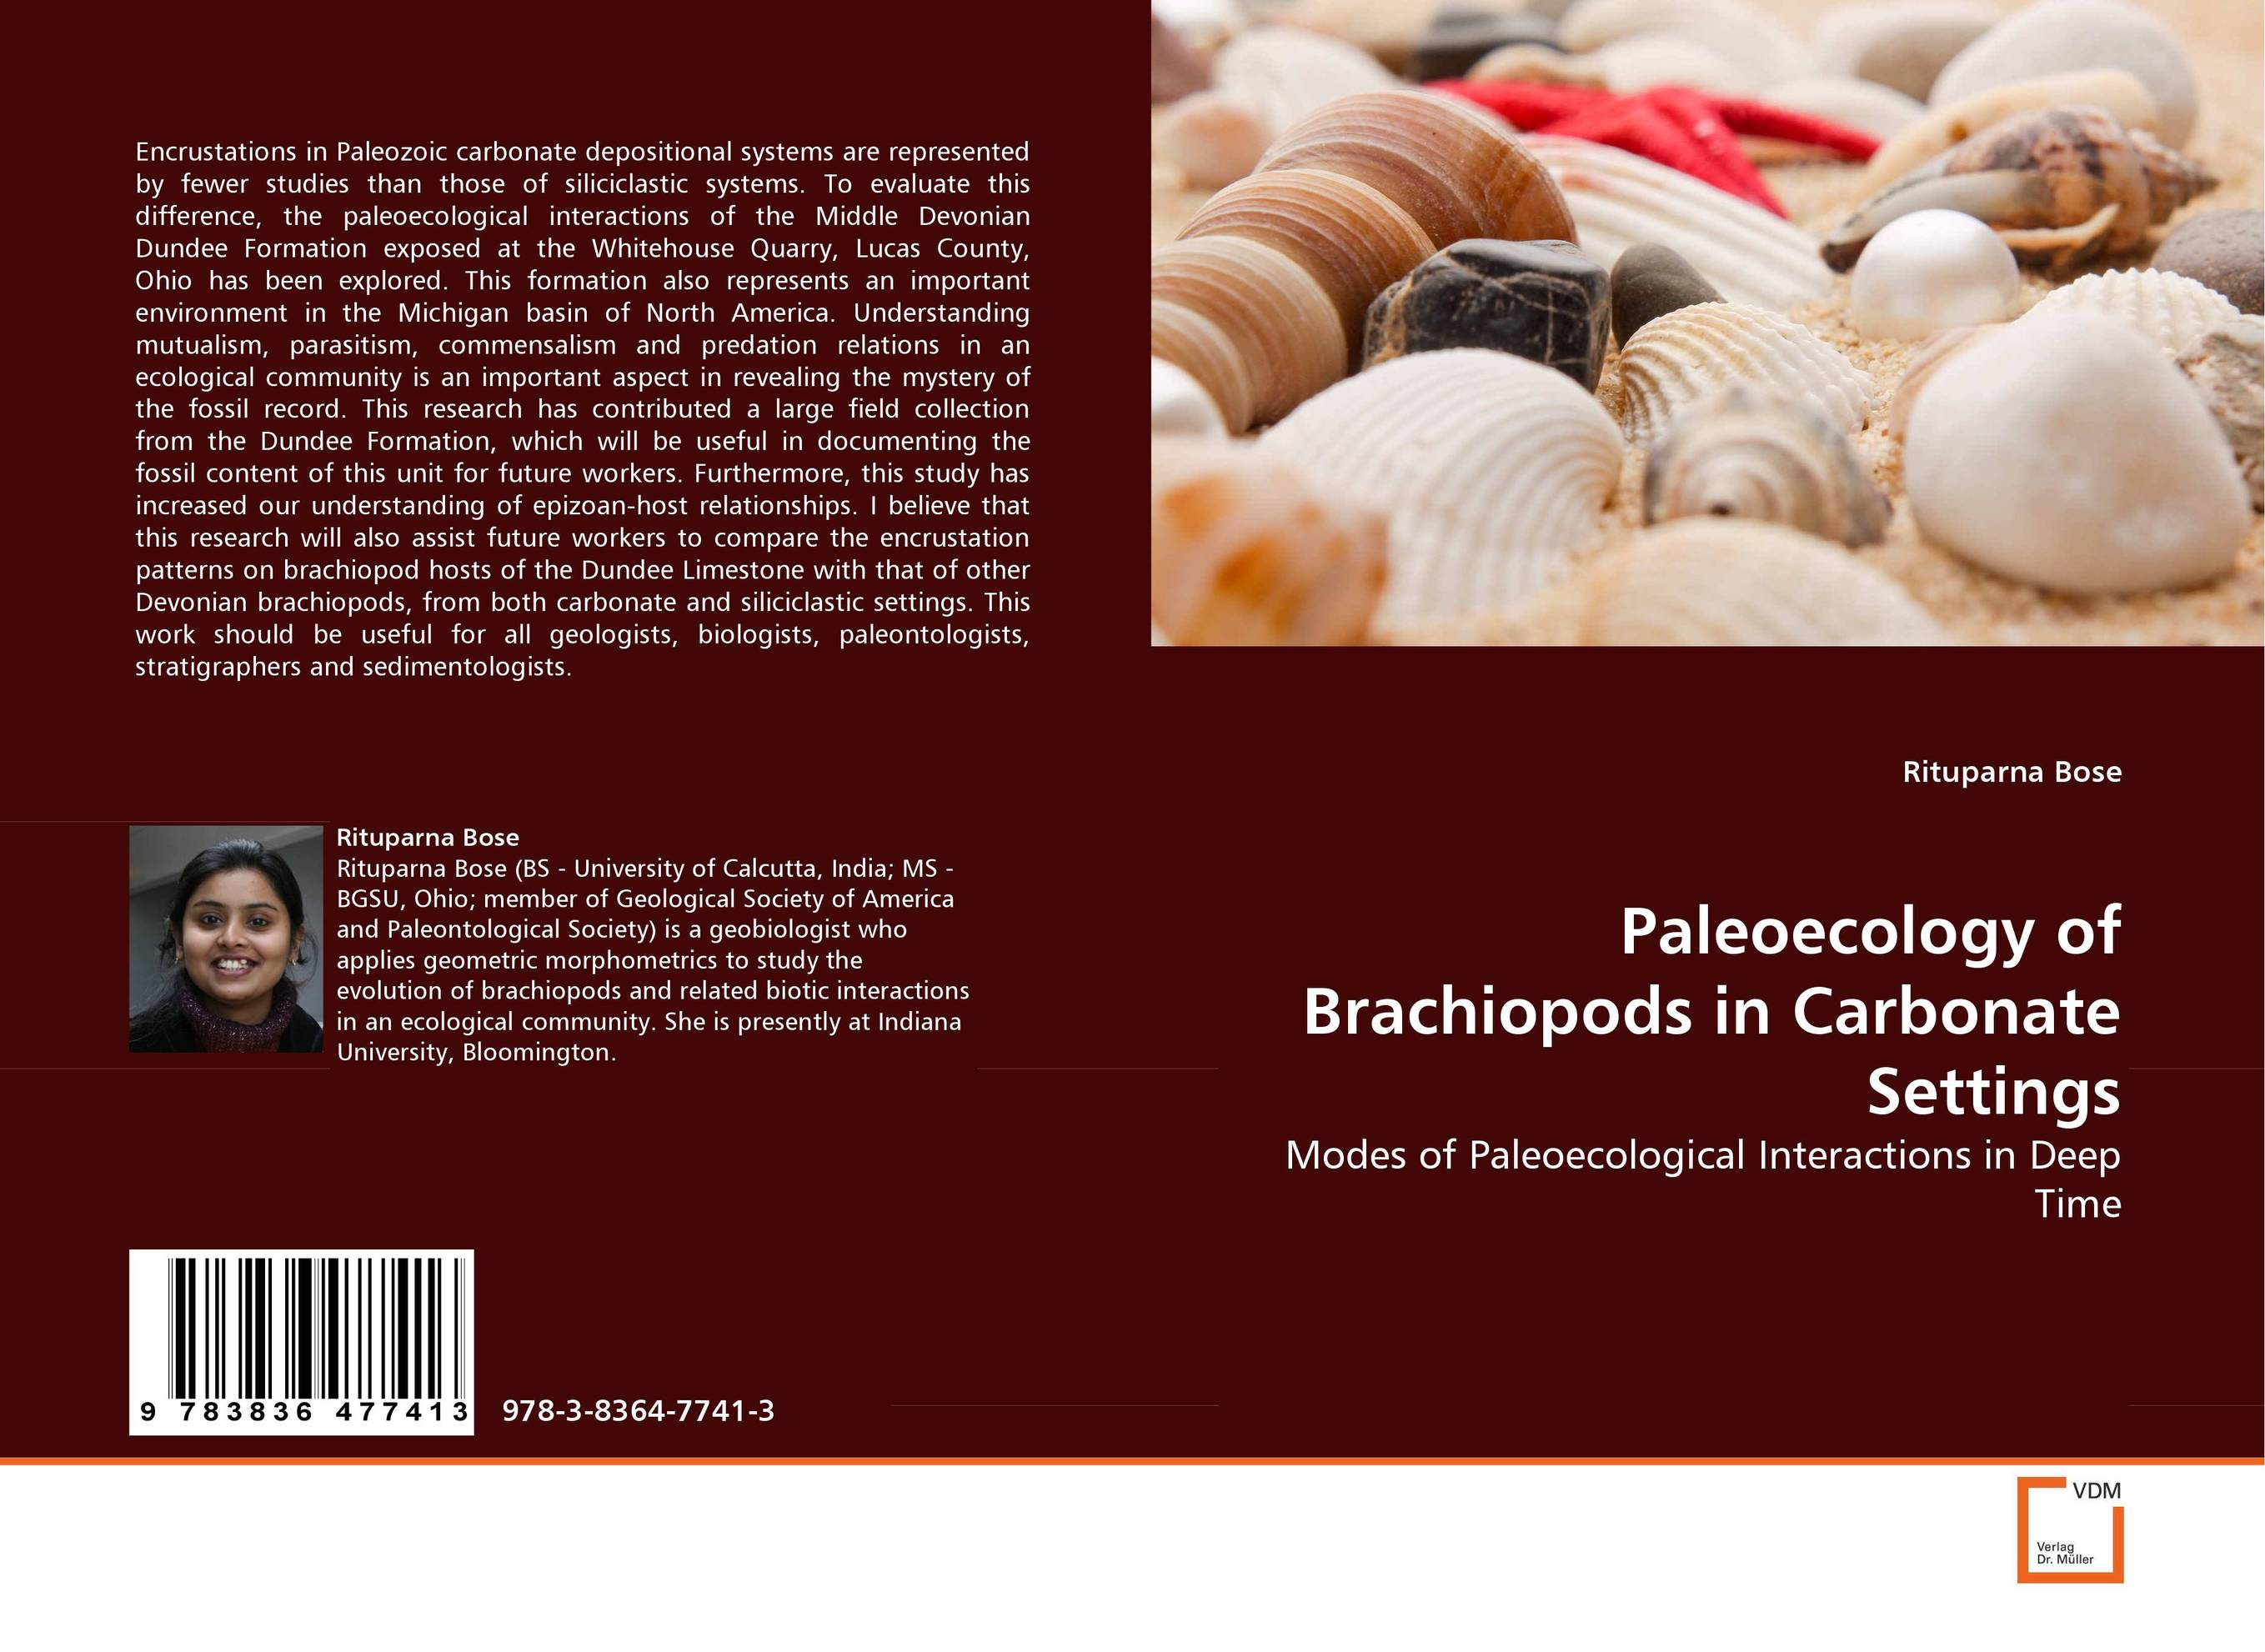 Paleoecology of Brachiopods in Carbonate Settings evolutionary ecology of extinct brachiopods